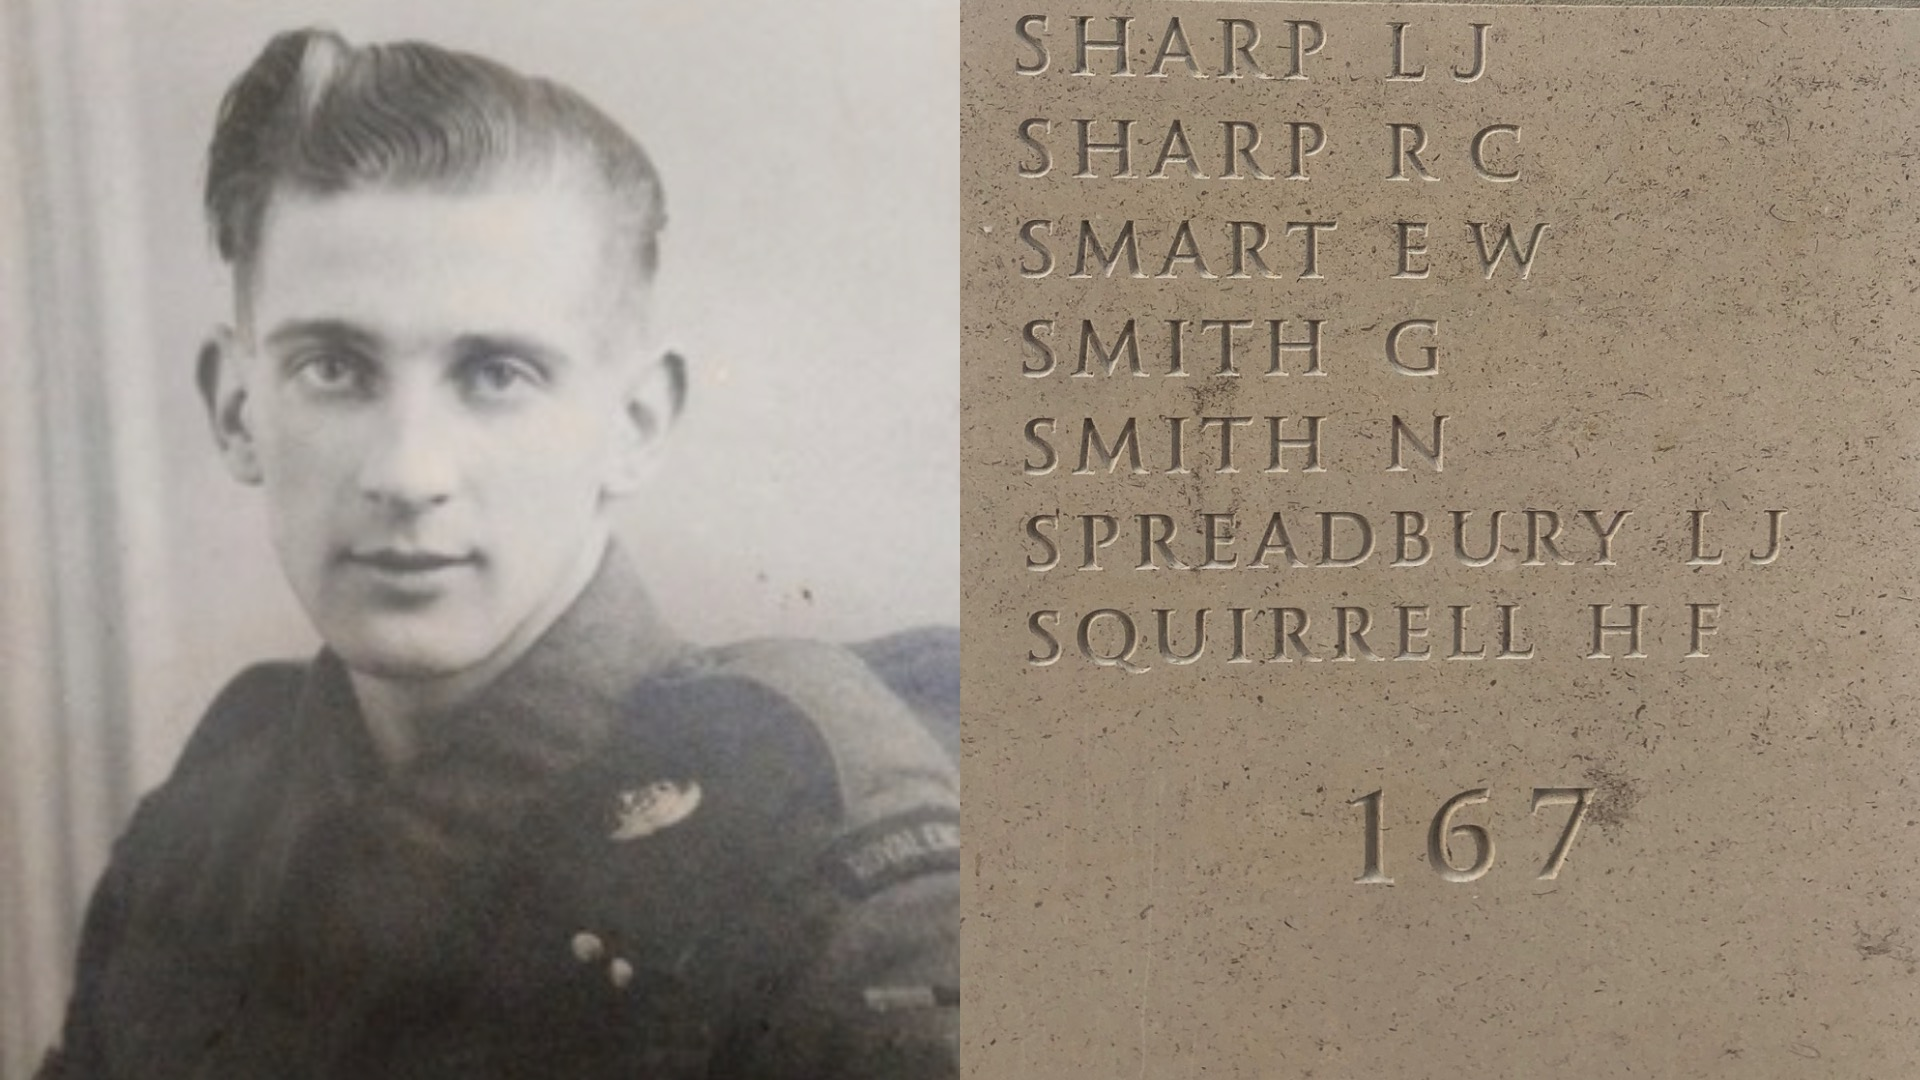 Pictures of Leonard and his name engraved on Memorial stone column